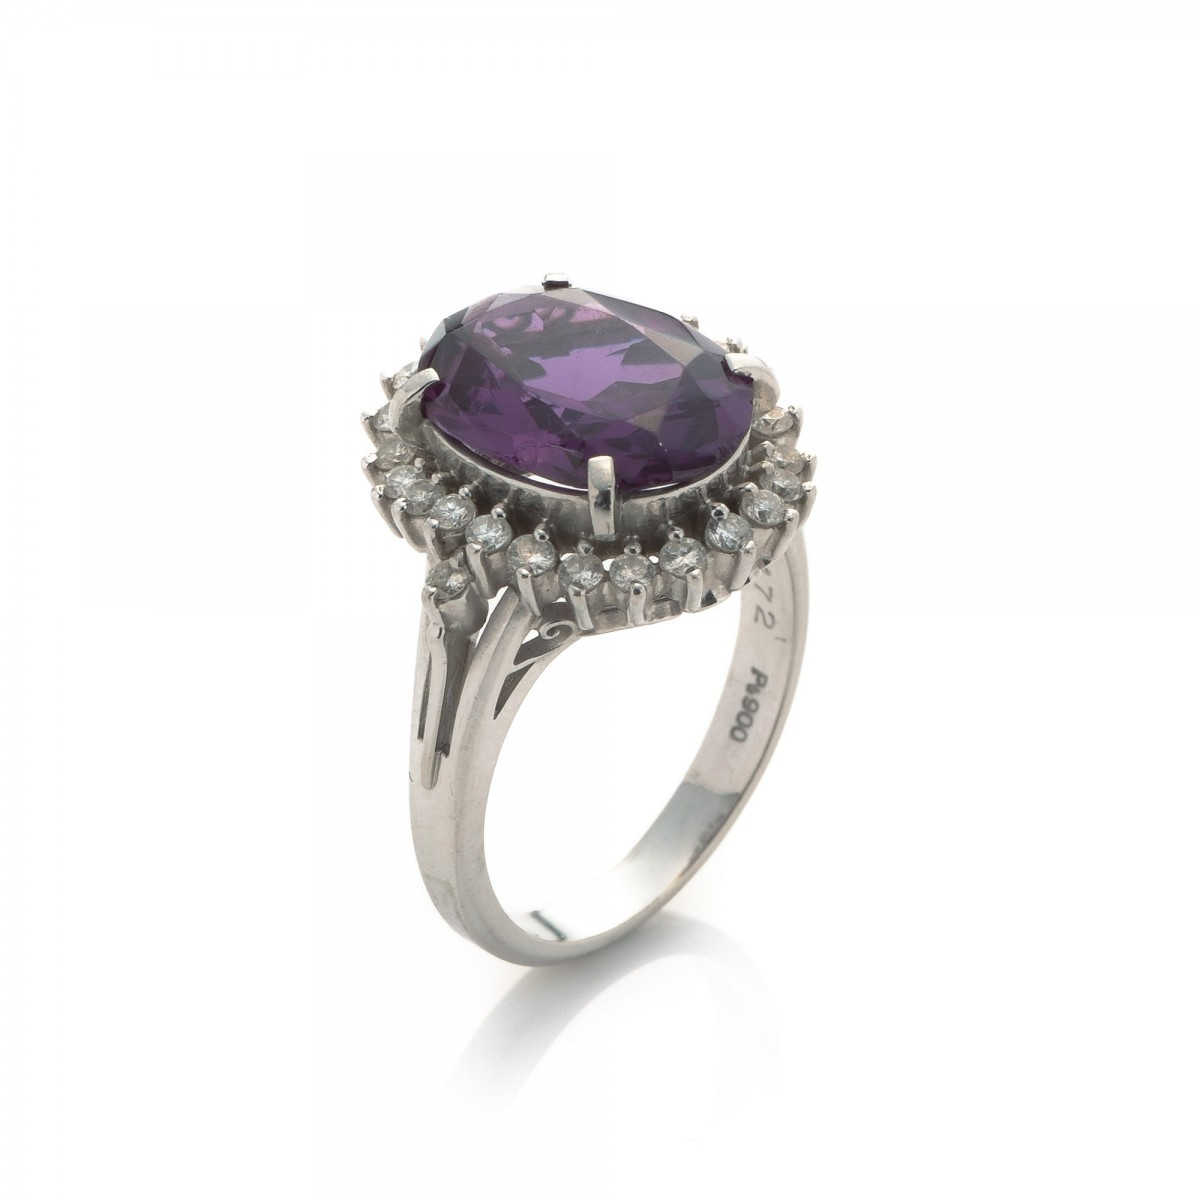 Estate Jewelry Amethyst & Diamond Ring Platinum  Lxrandco  Preowned  Luxury Vintage